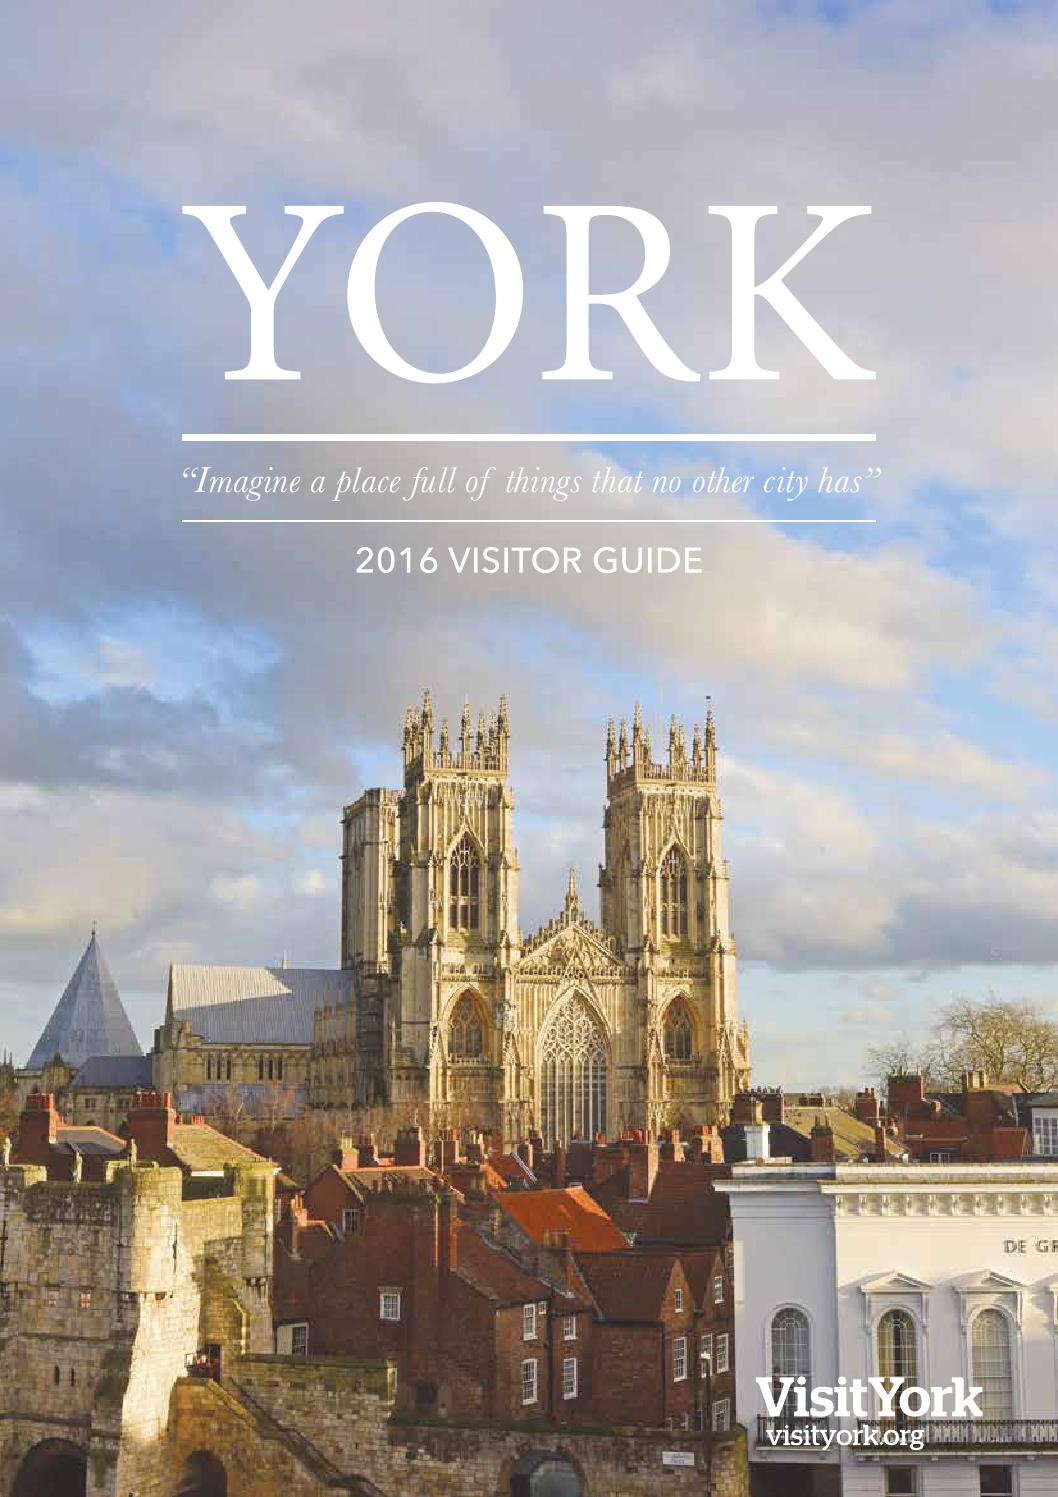 York Destination Guide 2016 by Visit York issuu